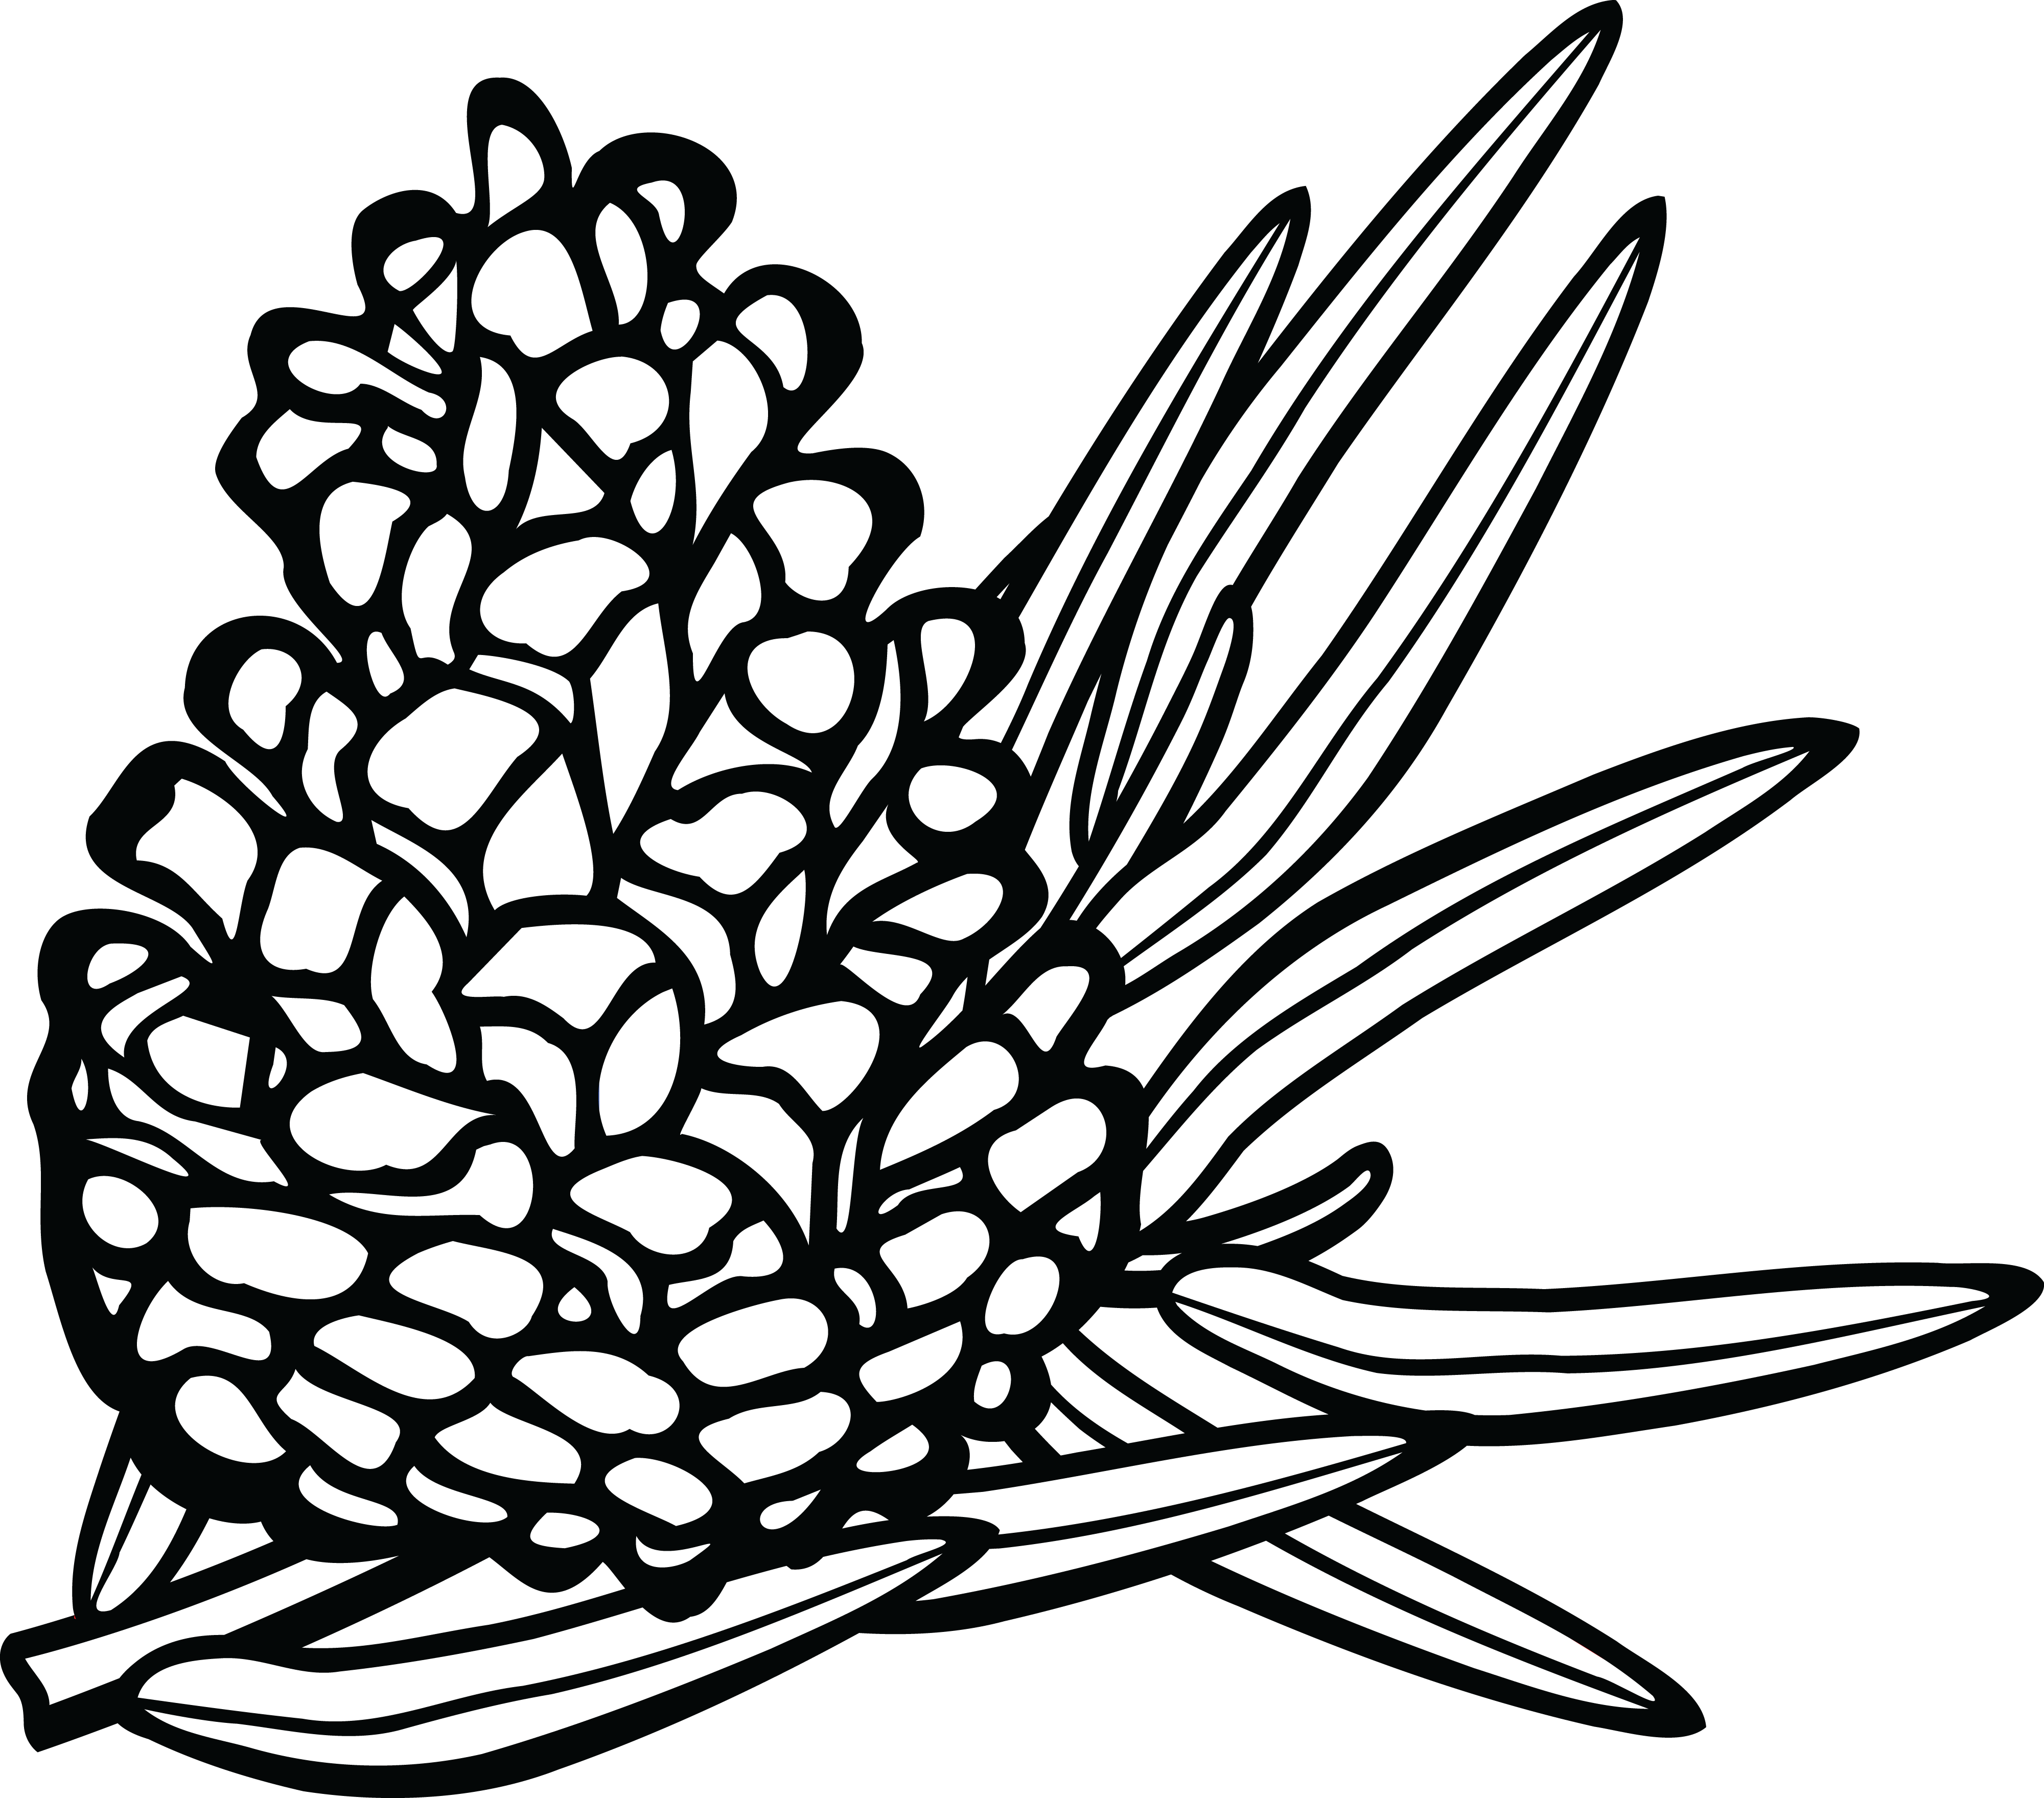 Winter clipart pinecone. Pine cone line drawing